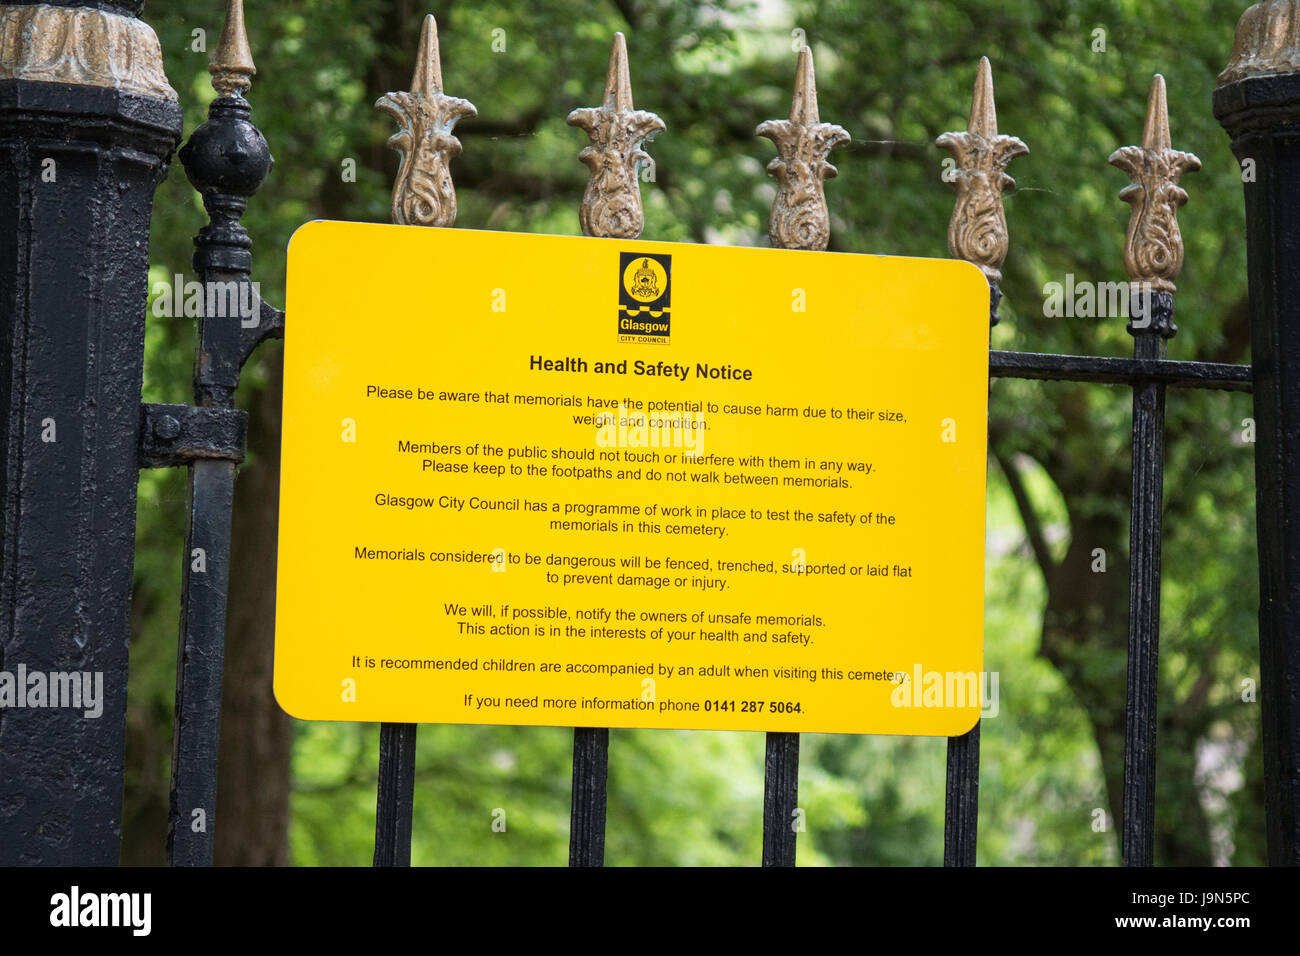 Glasgow Necropolis warning health and safety notice about the dangers of falling unsafe memorials gravestones - Stock Image